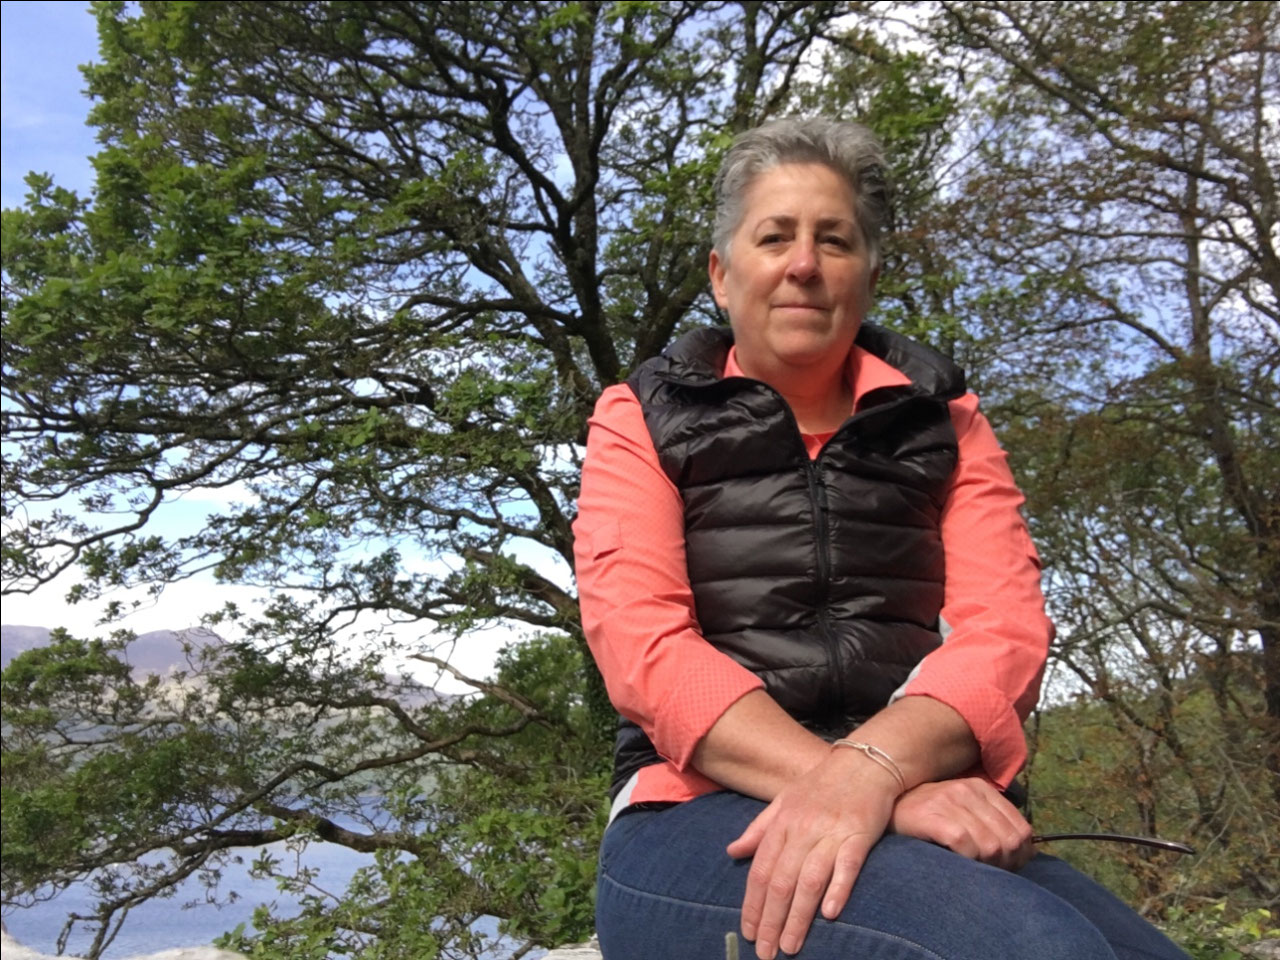 Me...in the park...with a clean face